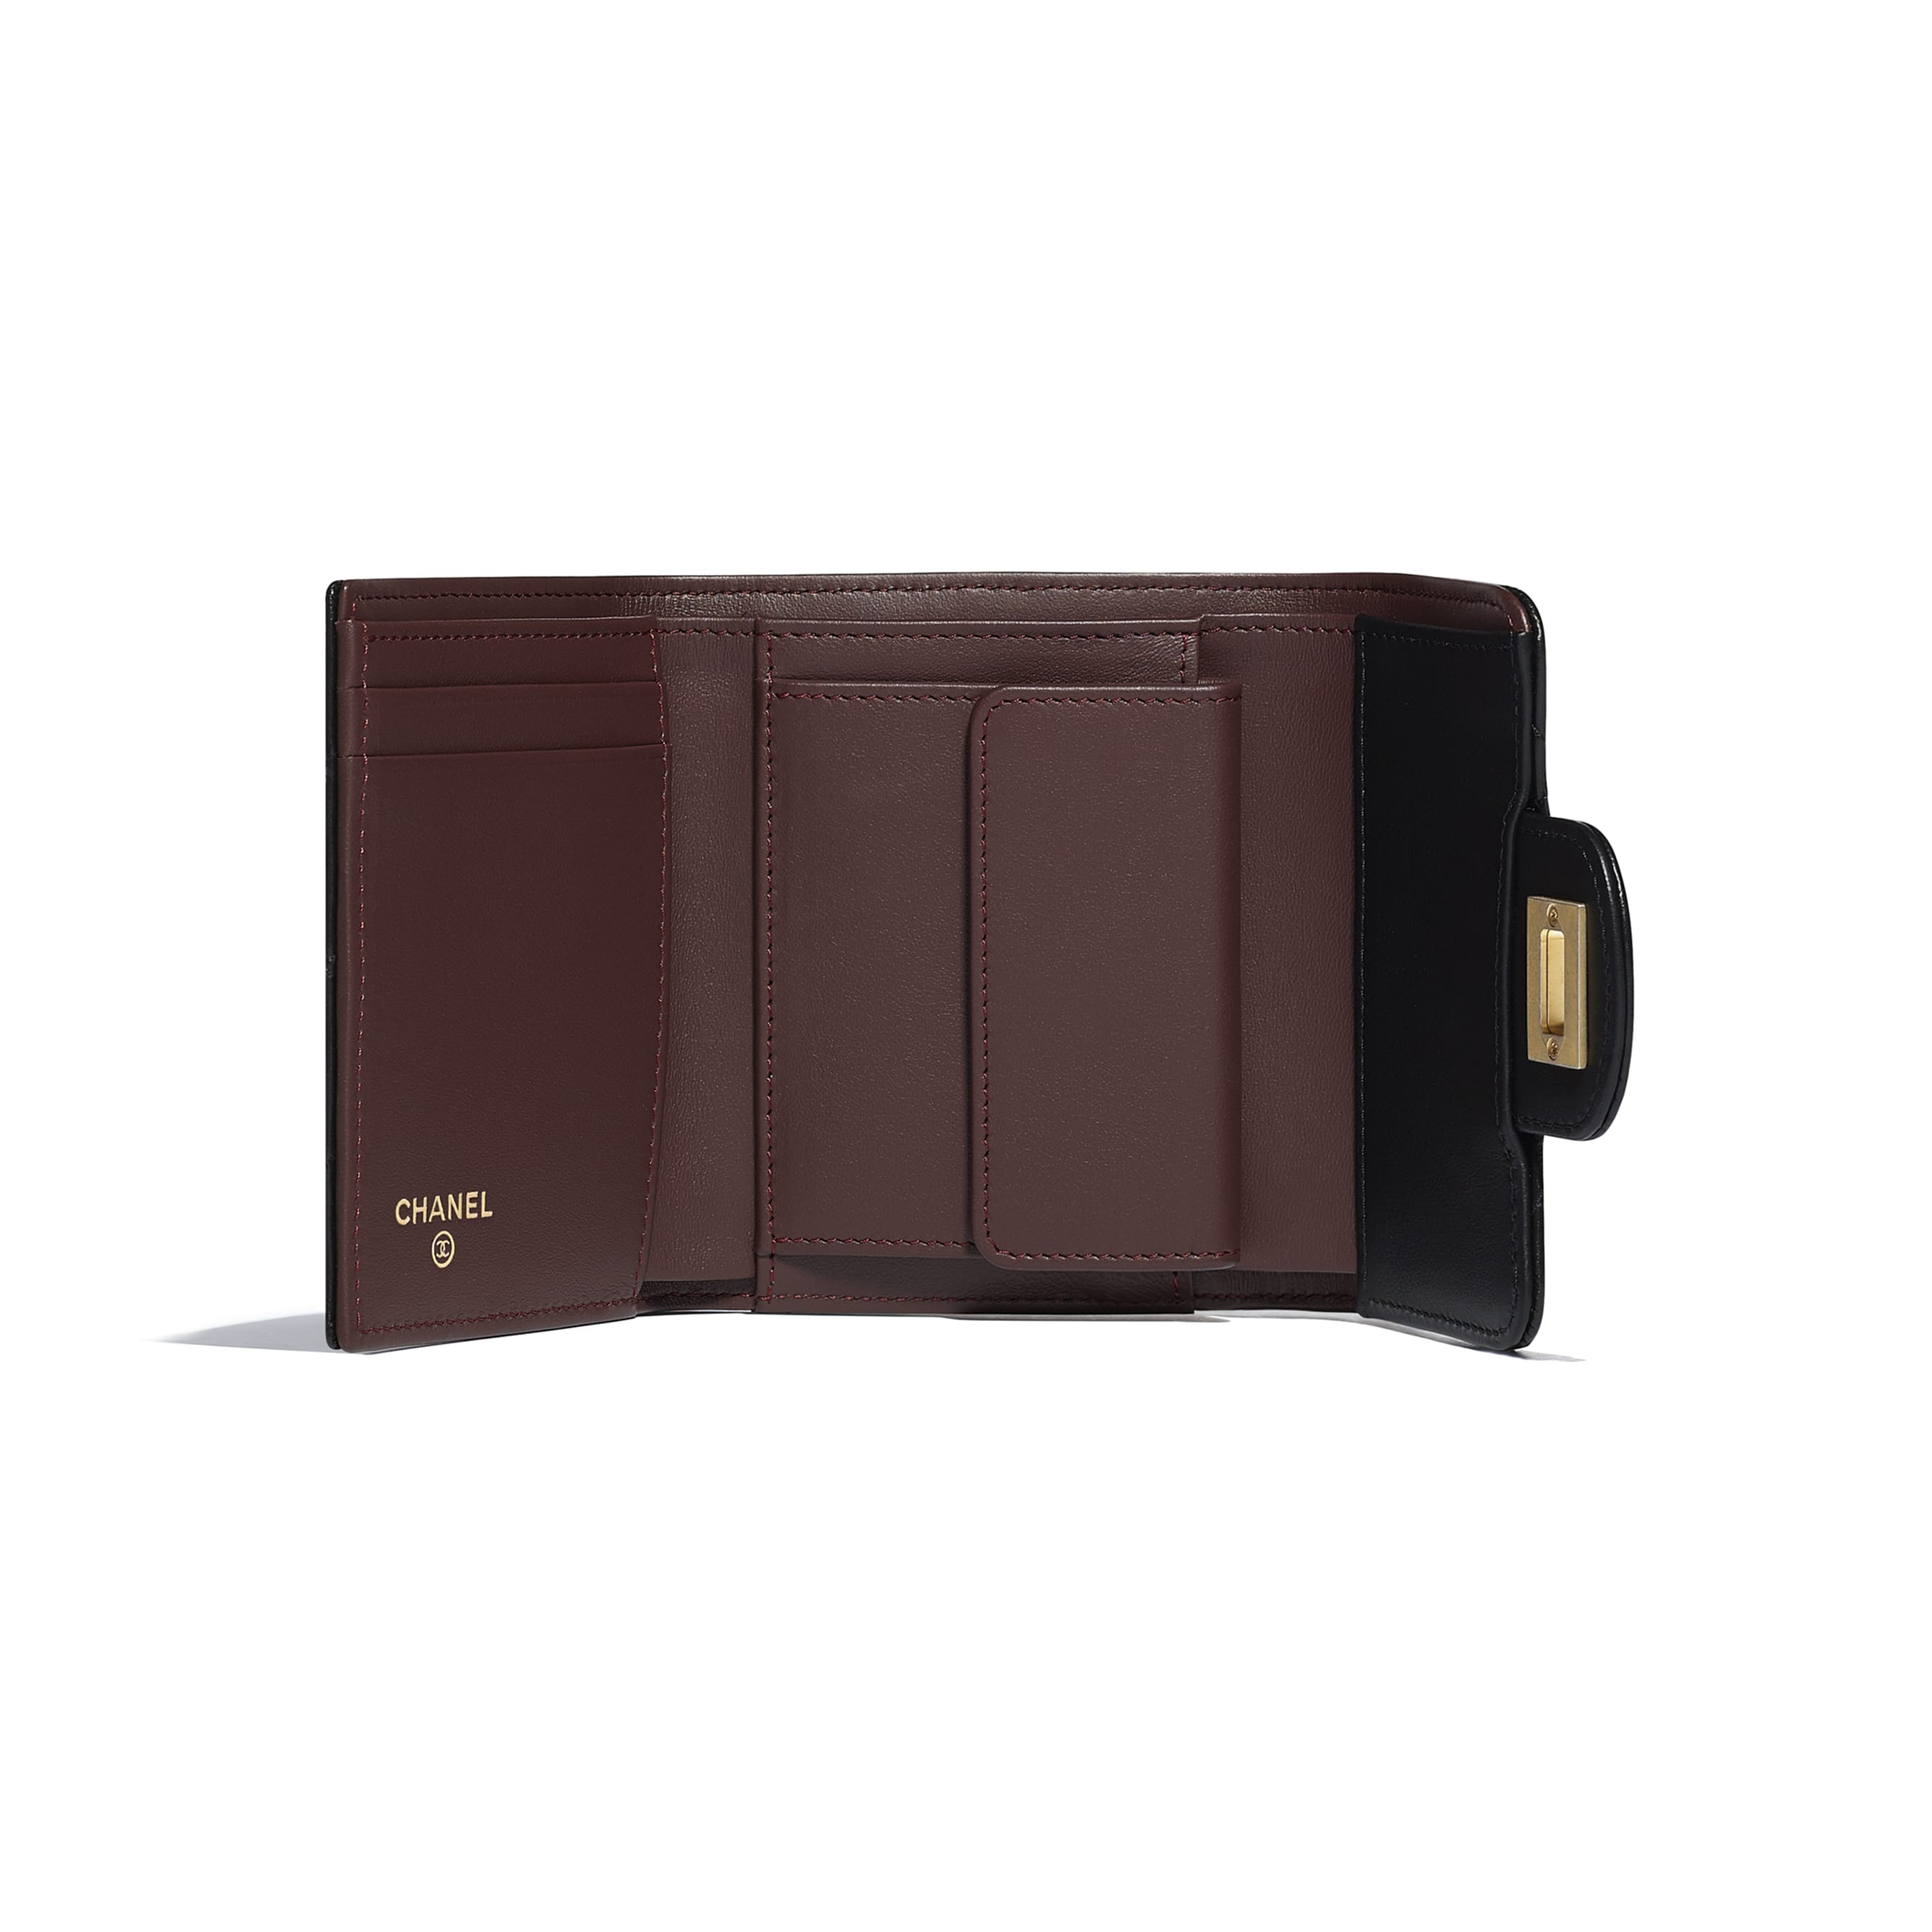 2.55 Small Flap Wallet - Black - Aged Calfskin & Gold-Tone Metal - Other view - see standard sized version